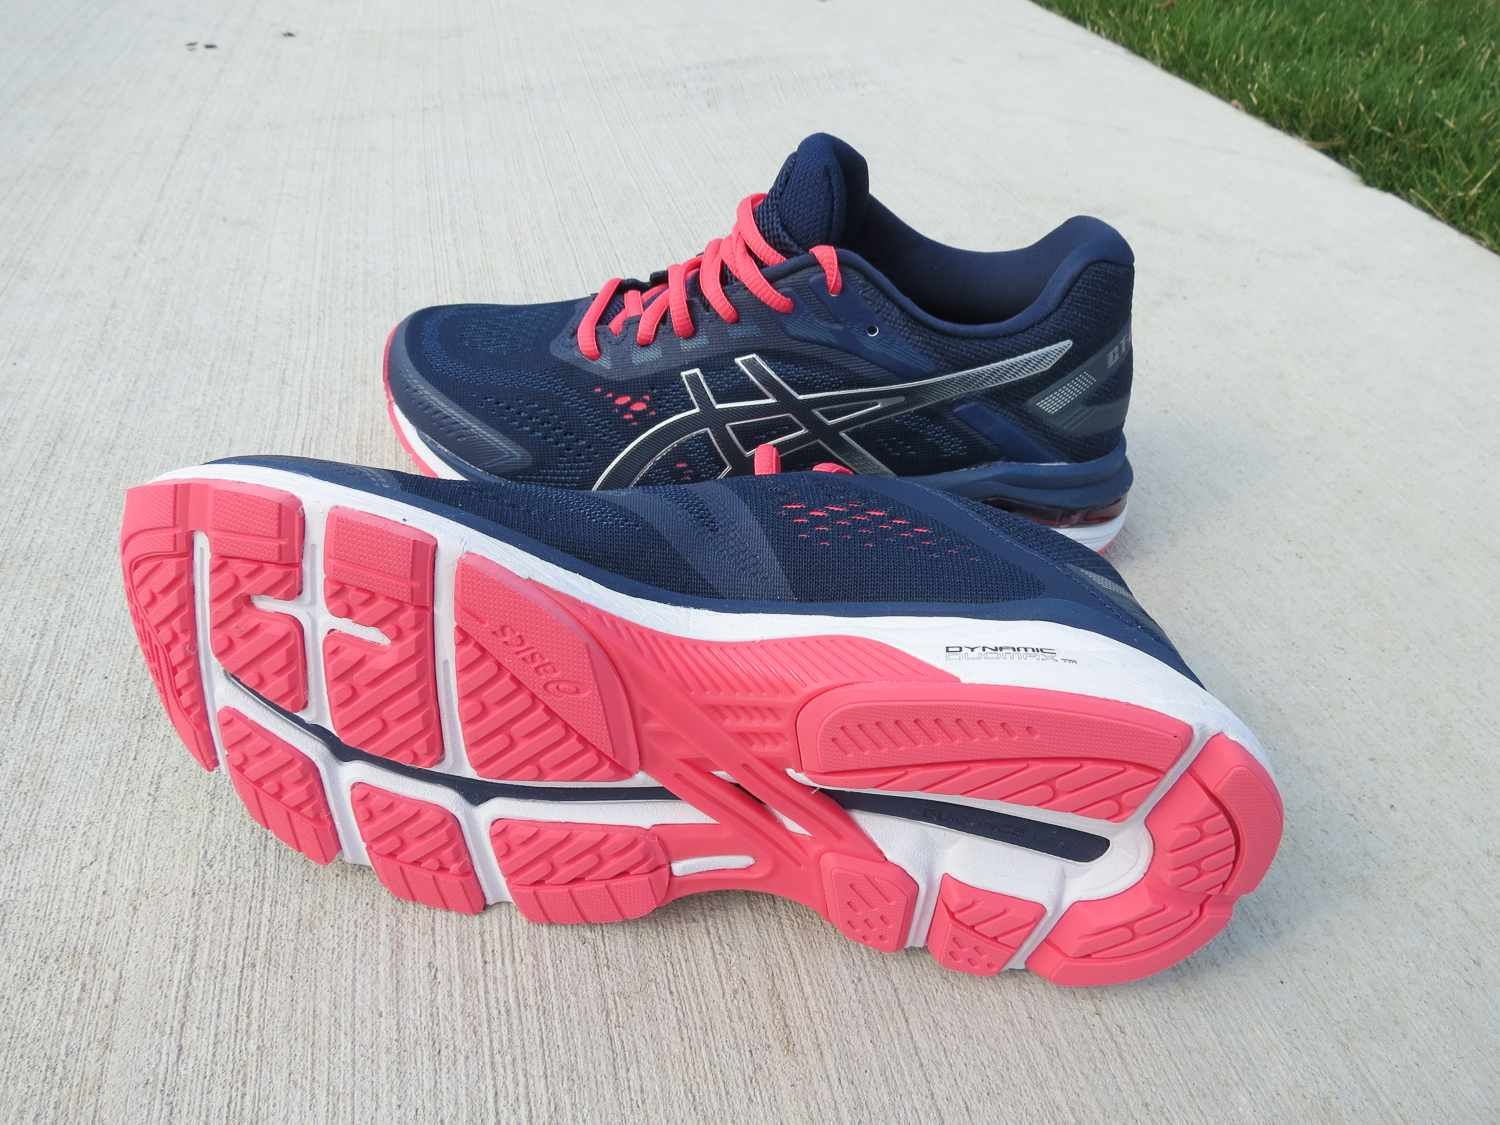 curva Circulo materno  ASICS GT-2000 7 Review: A Sturdy, All-Around Favorite